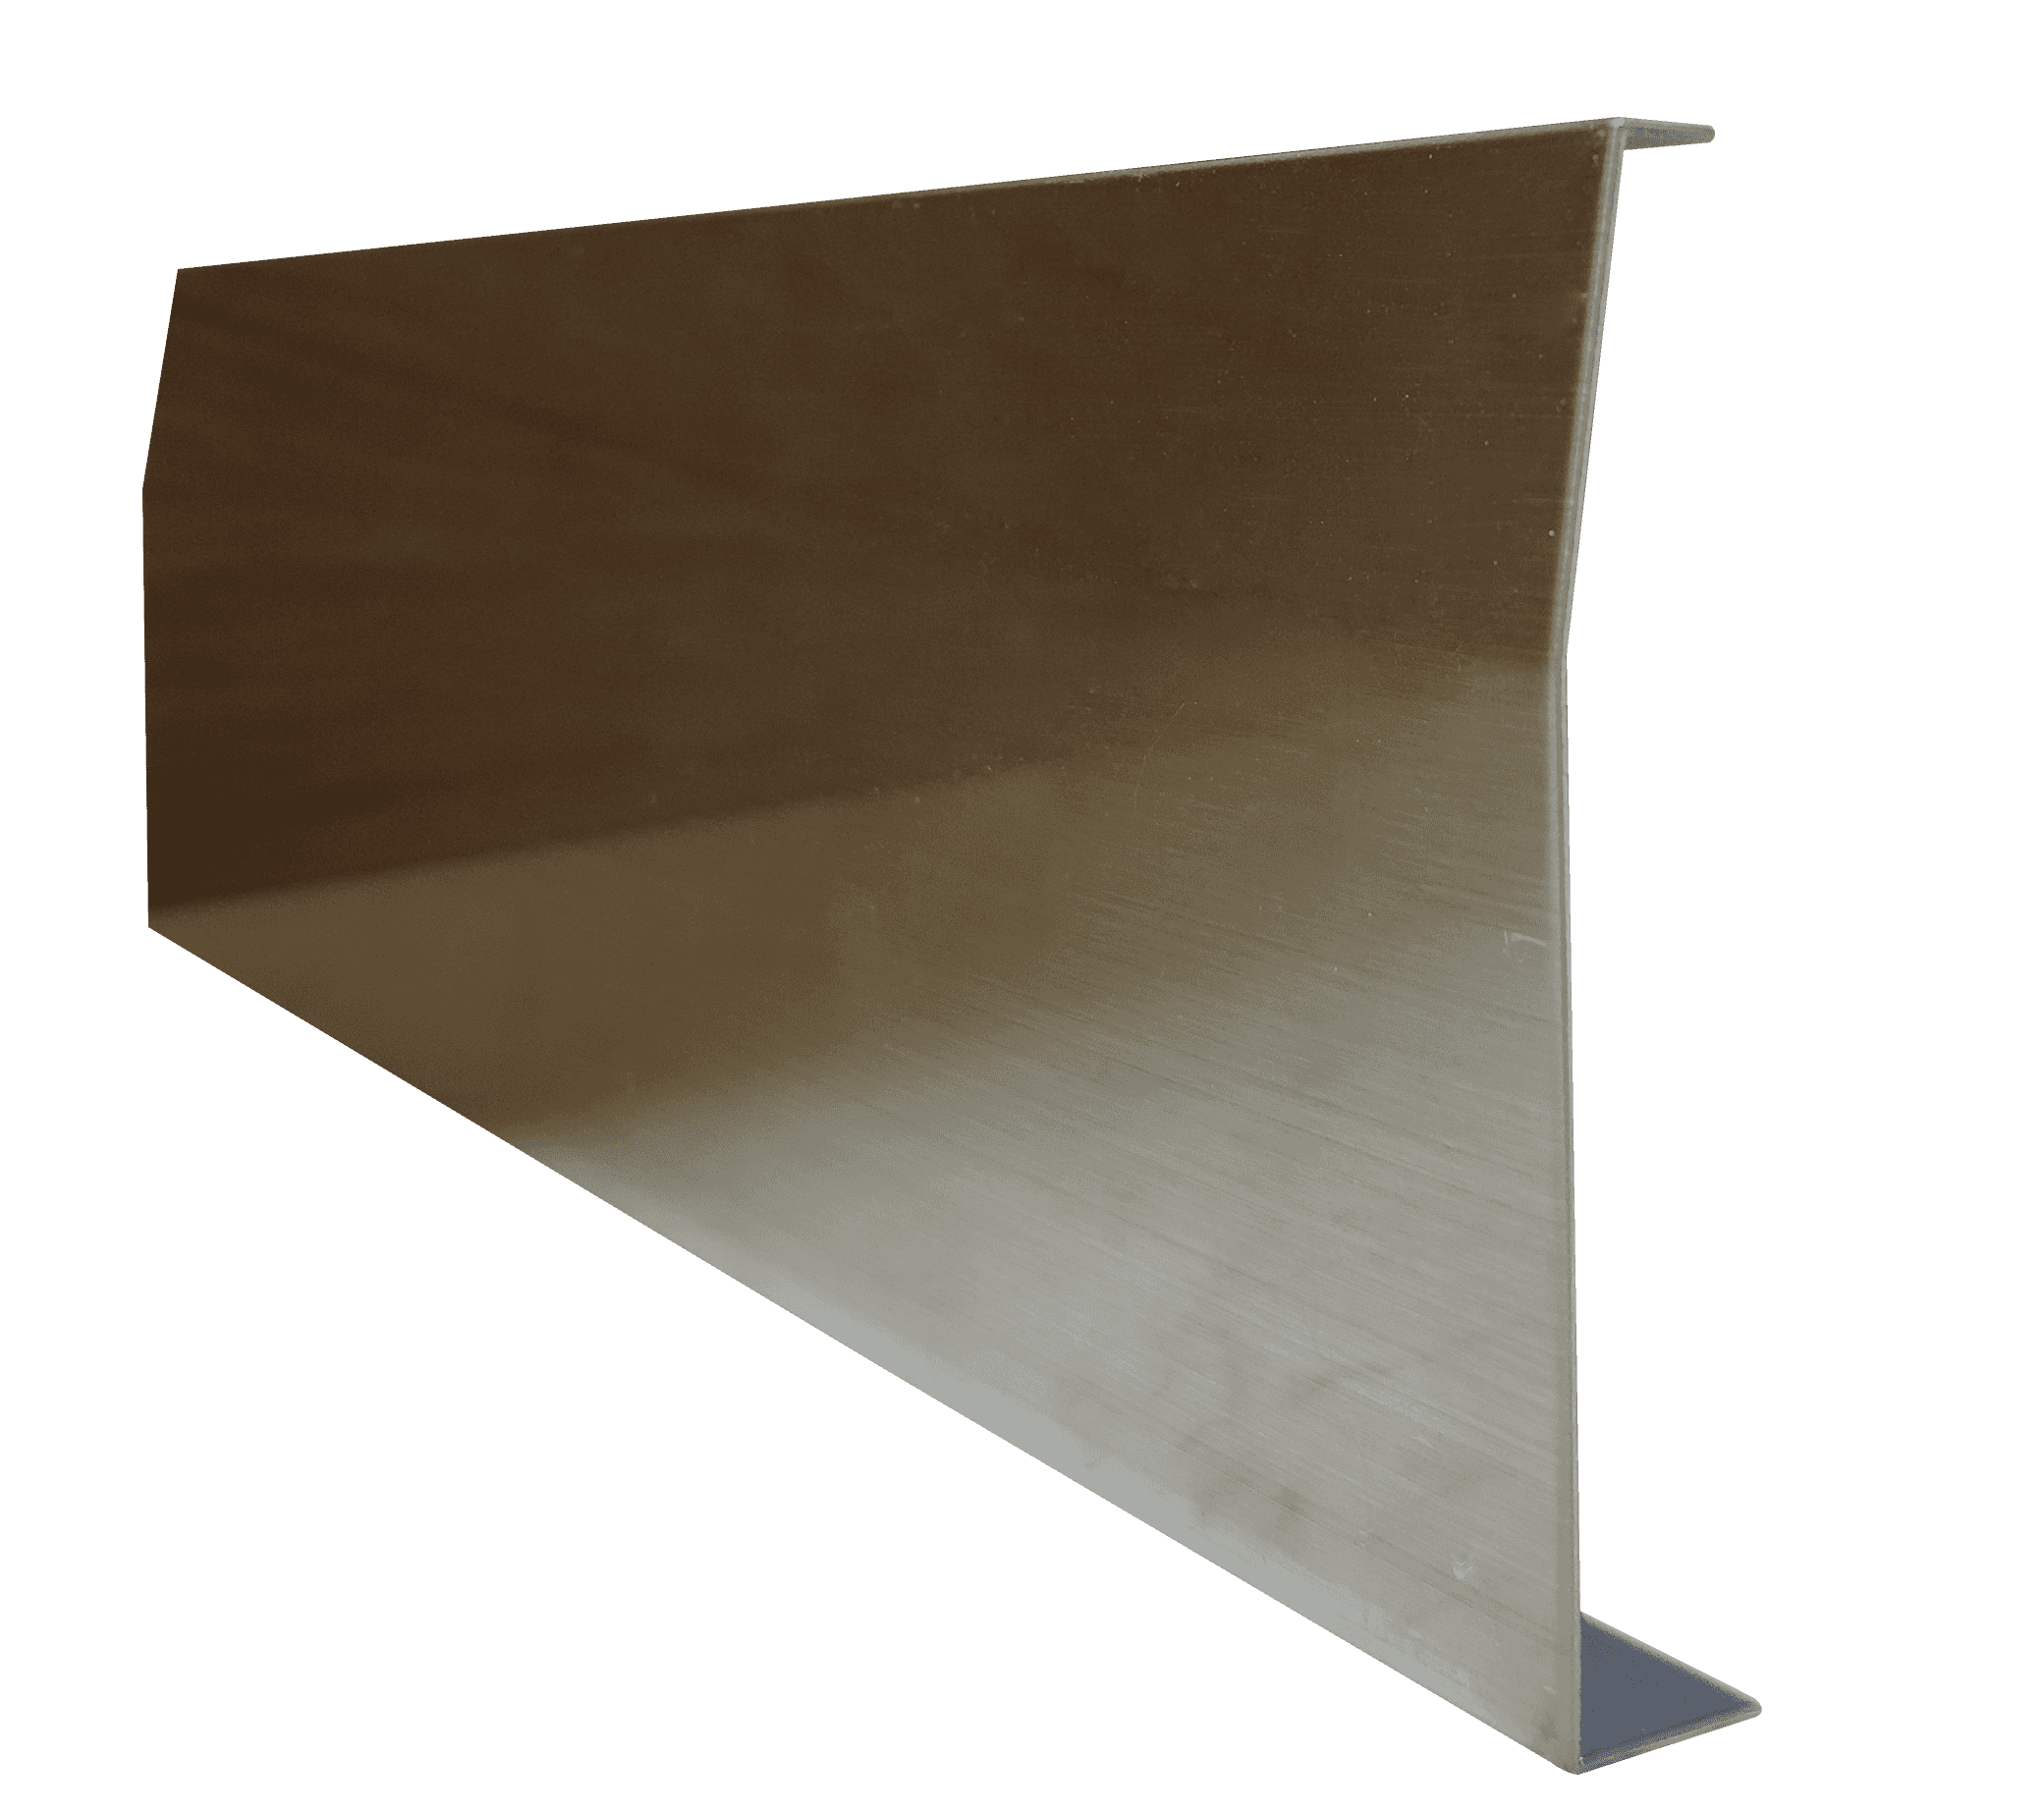 Sales Promotion High Quality Original Design Yekalon Stainless Steel Skirting Baseboard Flooring Accessories WJ00211